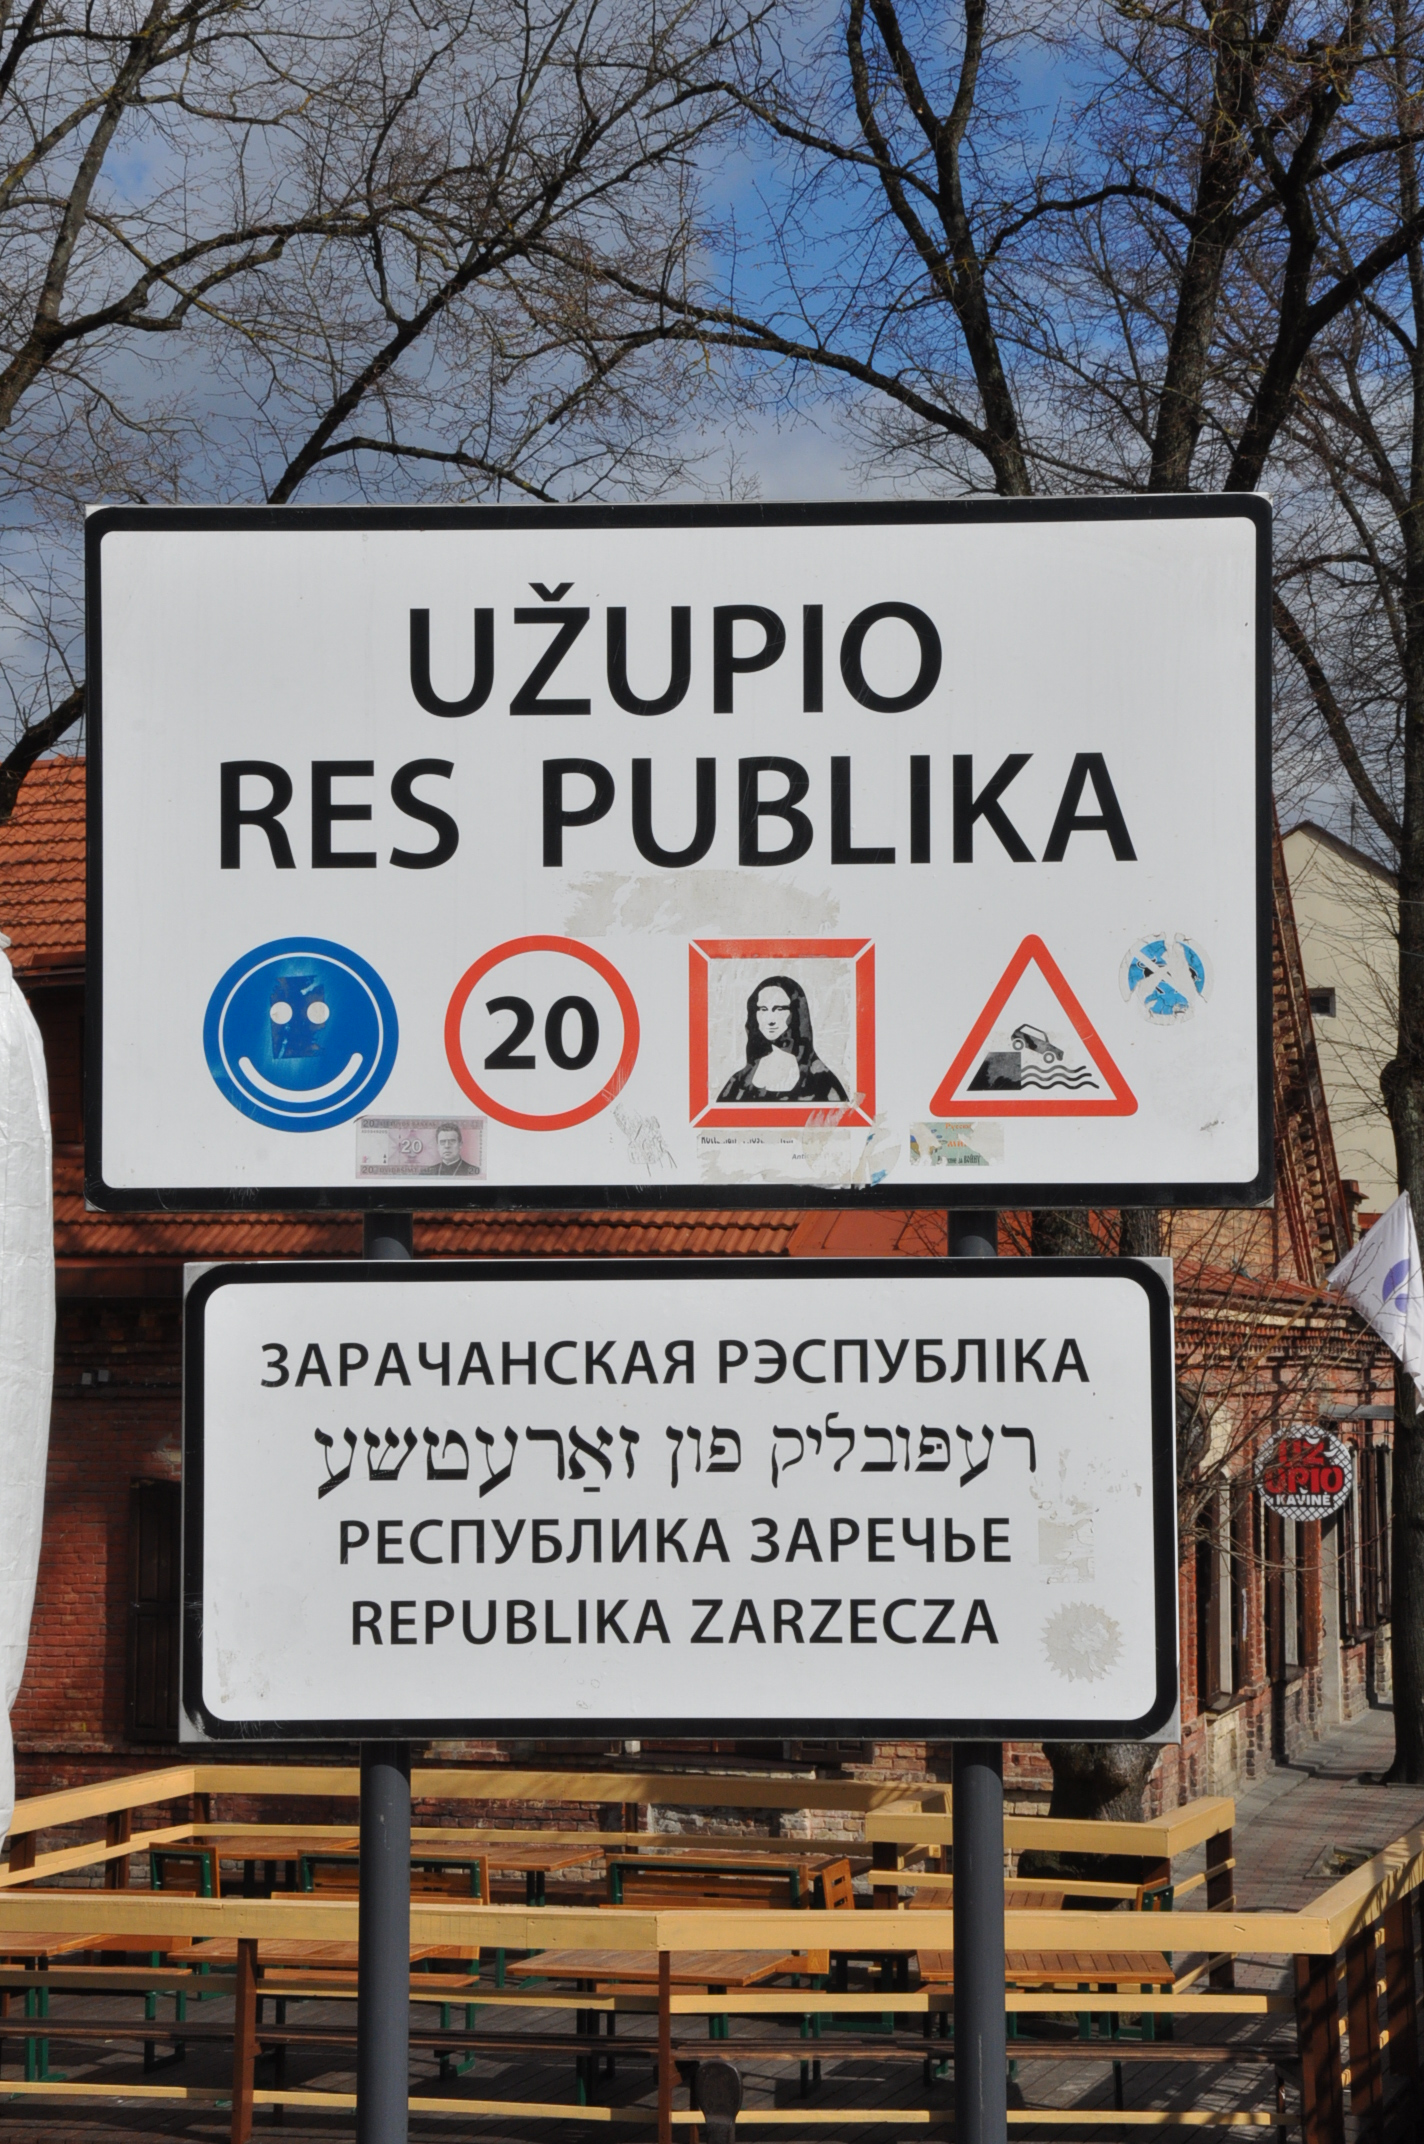 Šeima Means Family 8: The Constitution of the Republic of Užupis